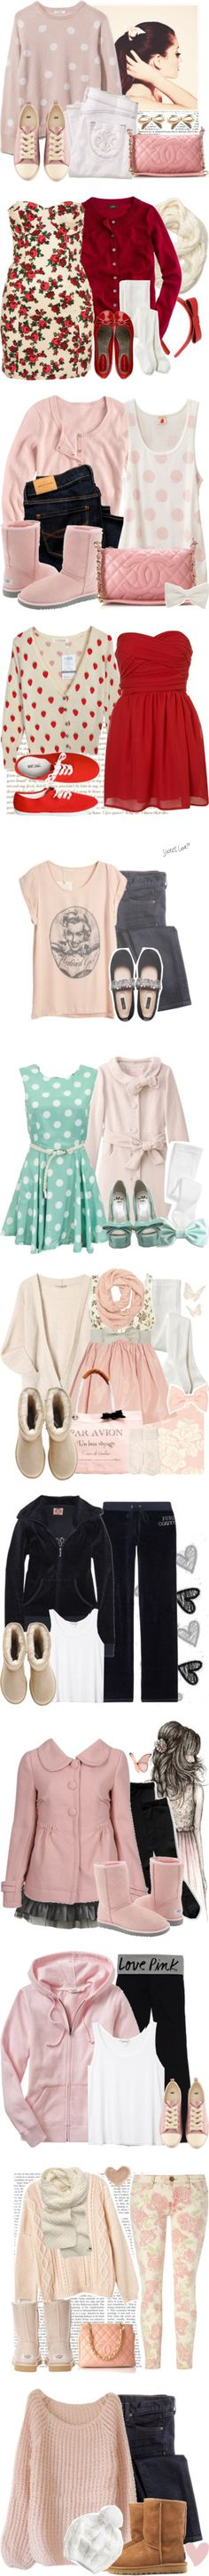 Cute outfits (: